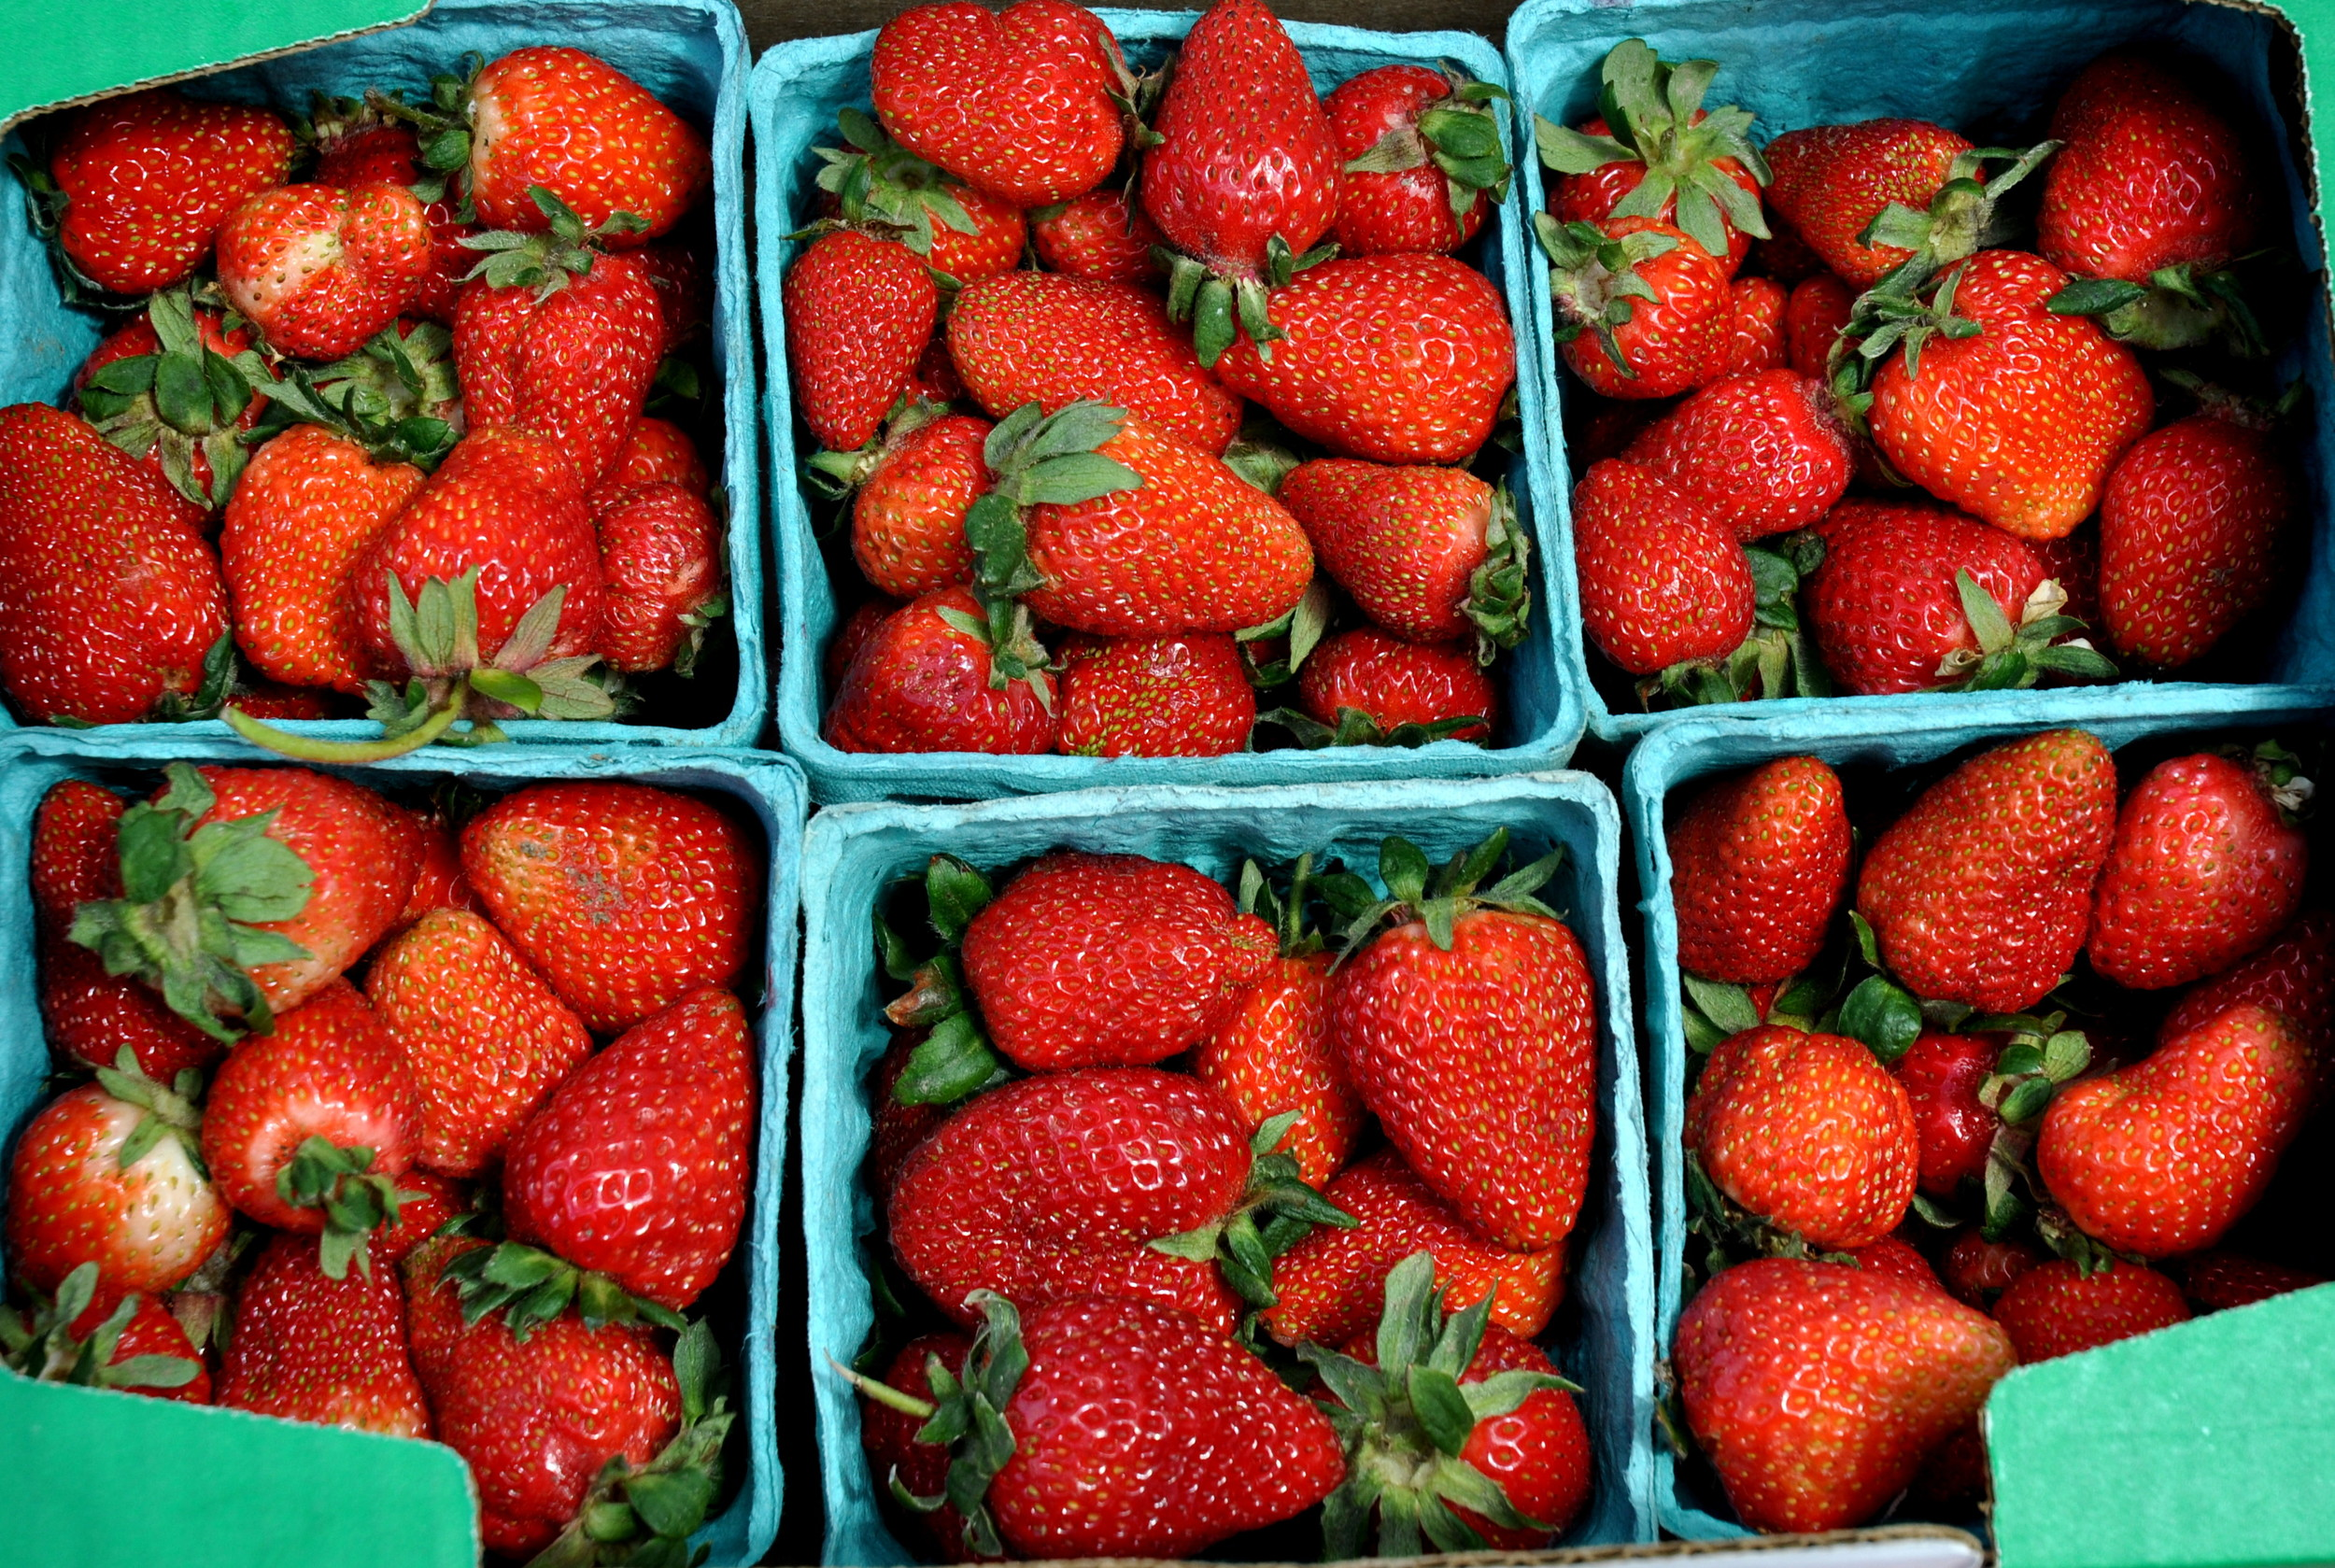 First-of-the-season organic strawberries from Tiny's Organic Produce. Photo copyright 2013 by Zachary D. Lyons.